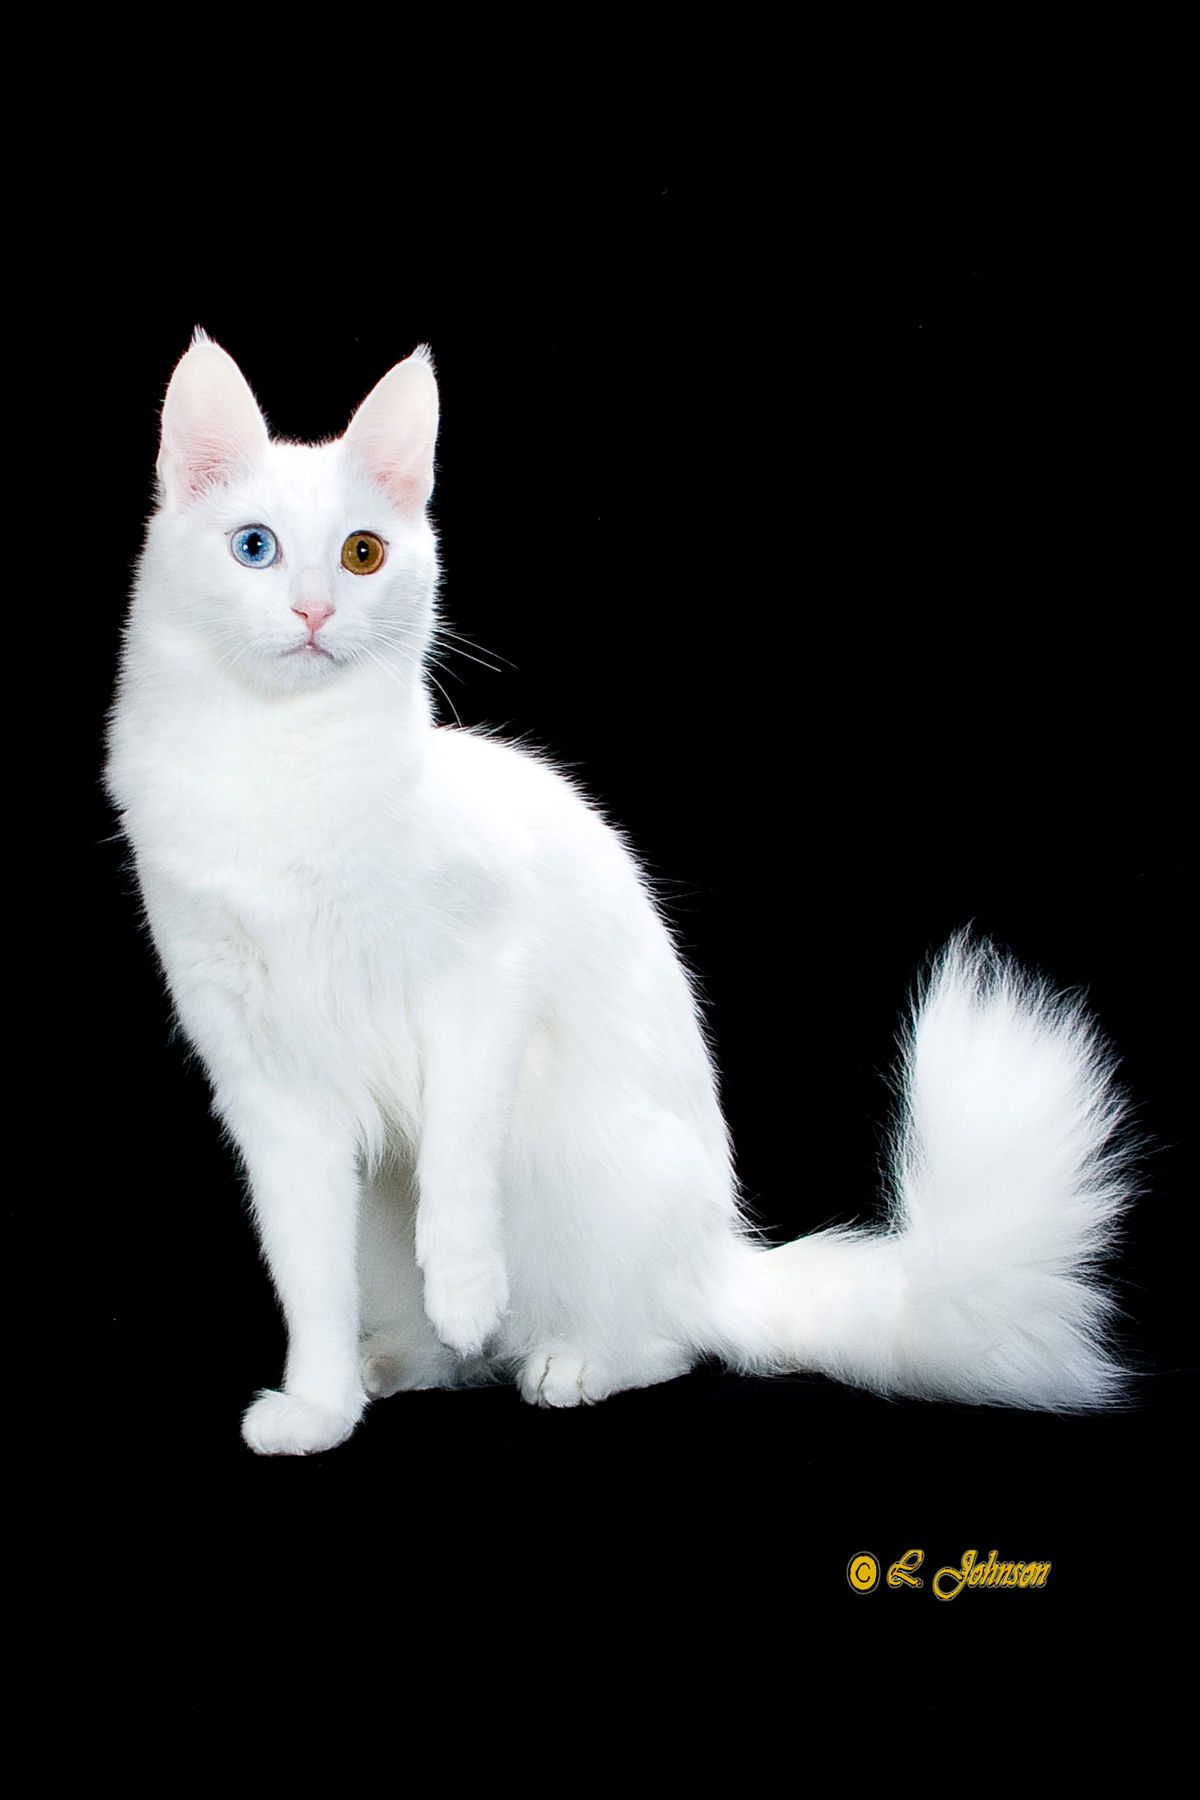 aebafafce3 Turkish Angora- This reminds me of my cat Crystal only her eyes were a  lighter